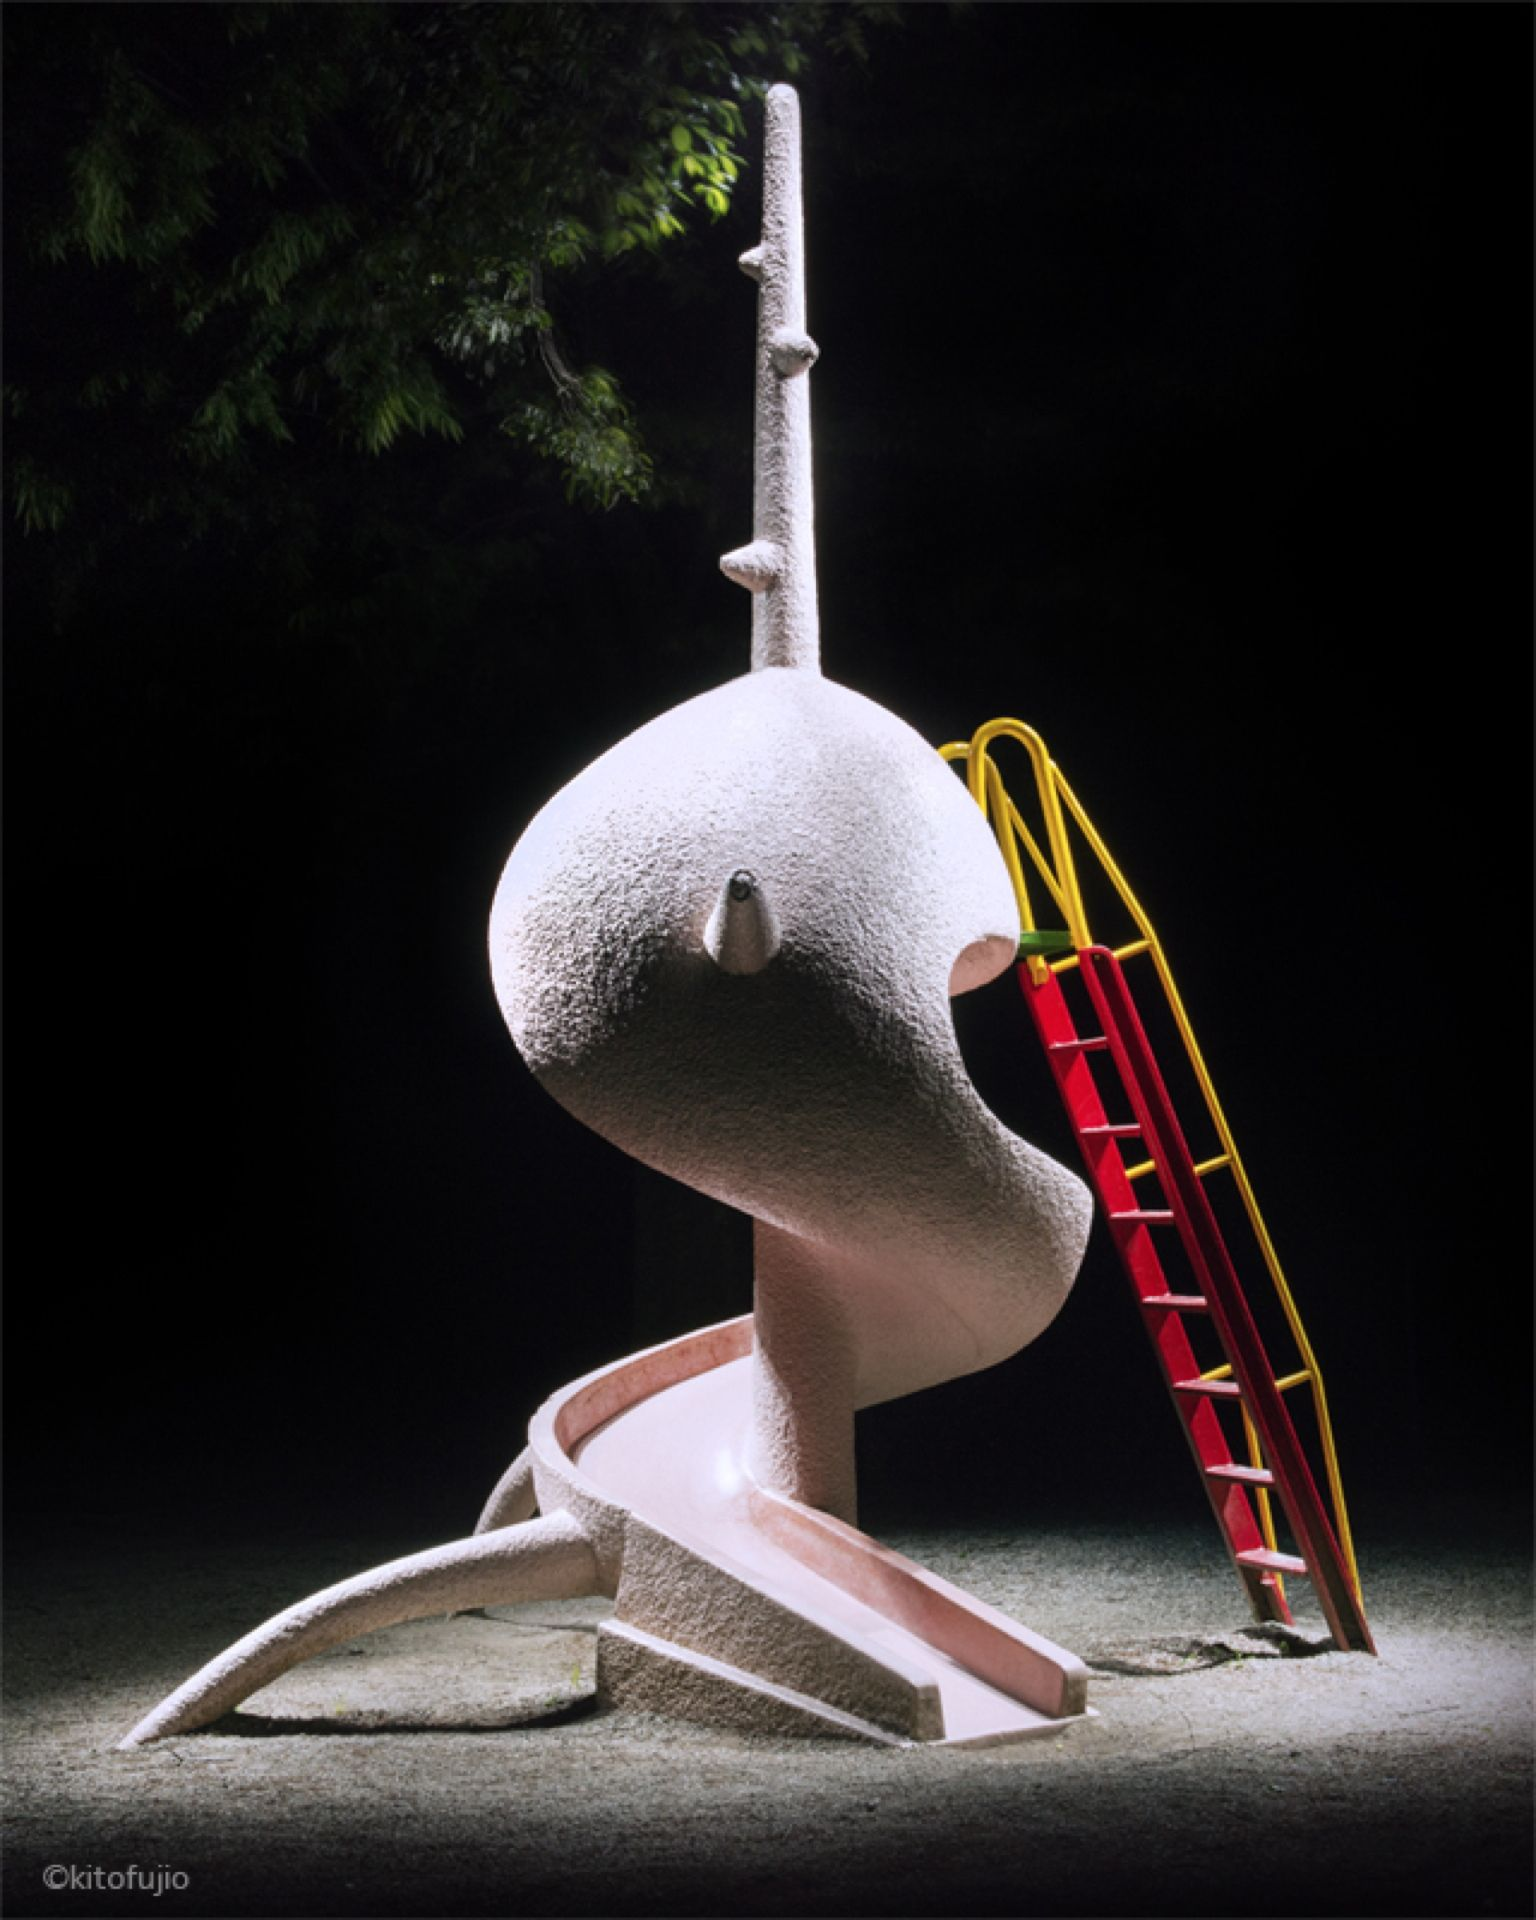 Kito Fujito - Playground Equipment